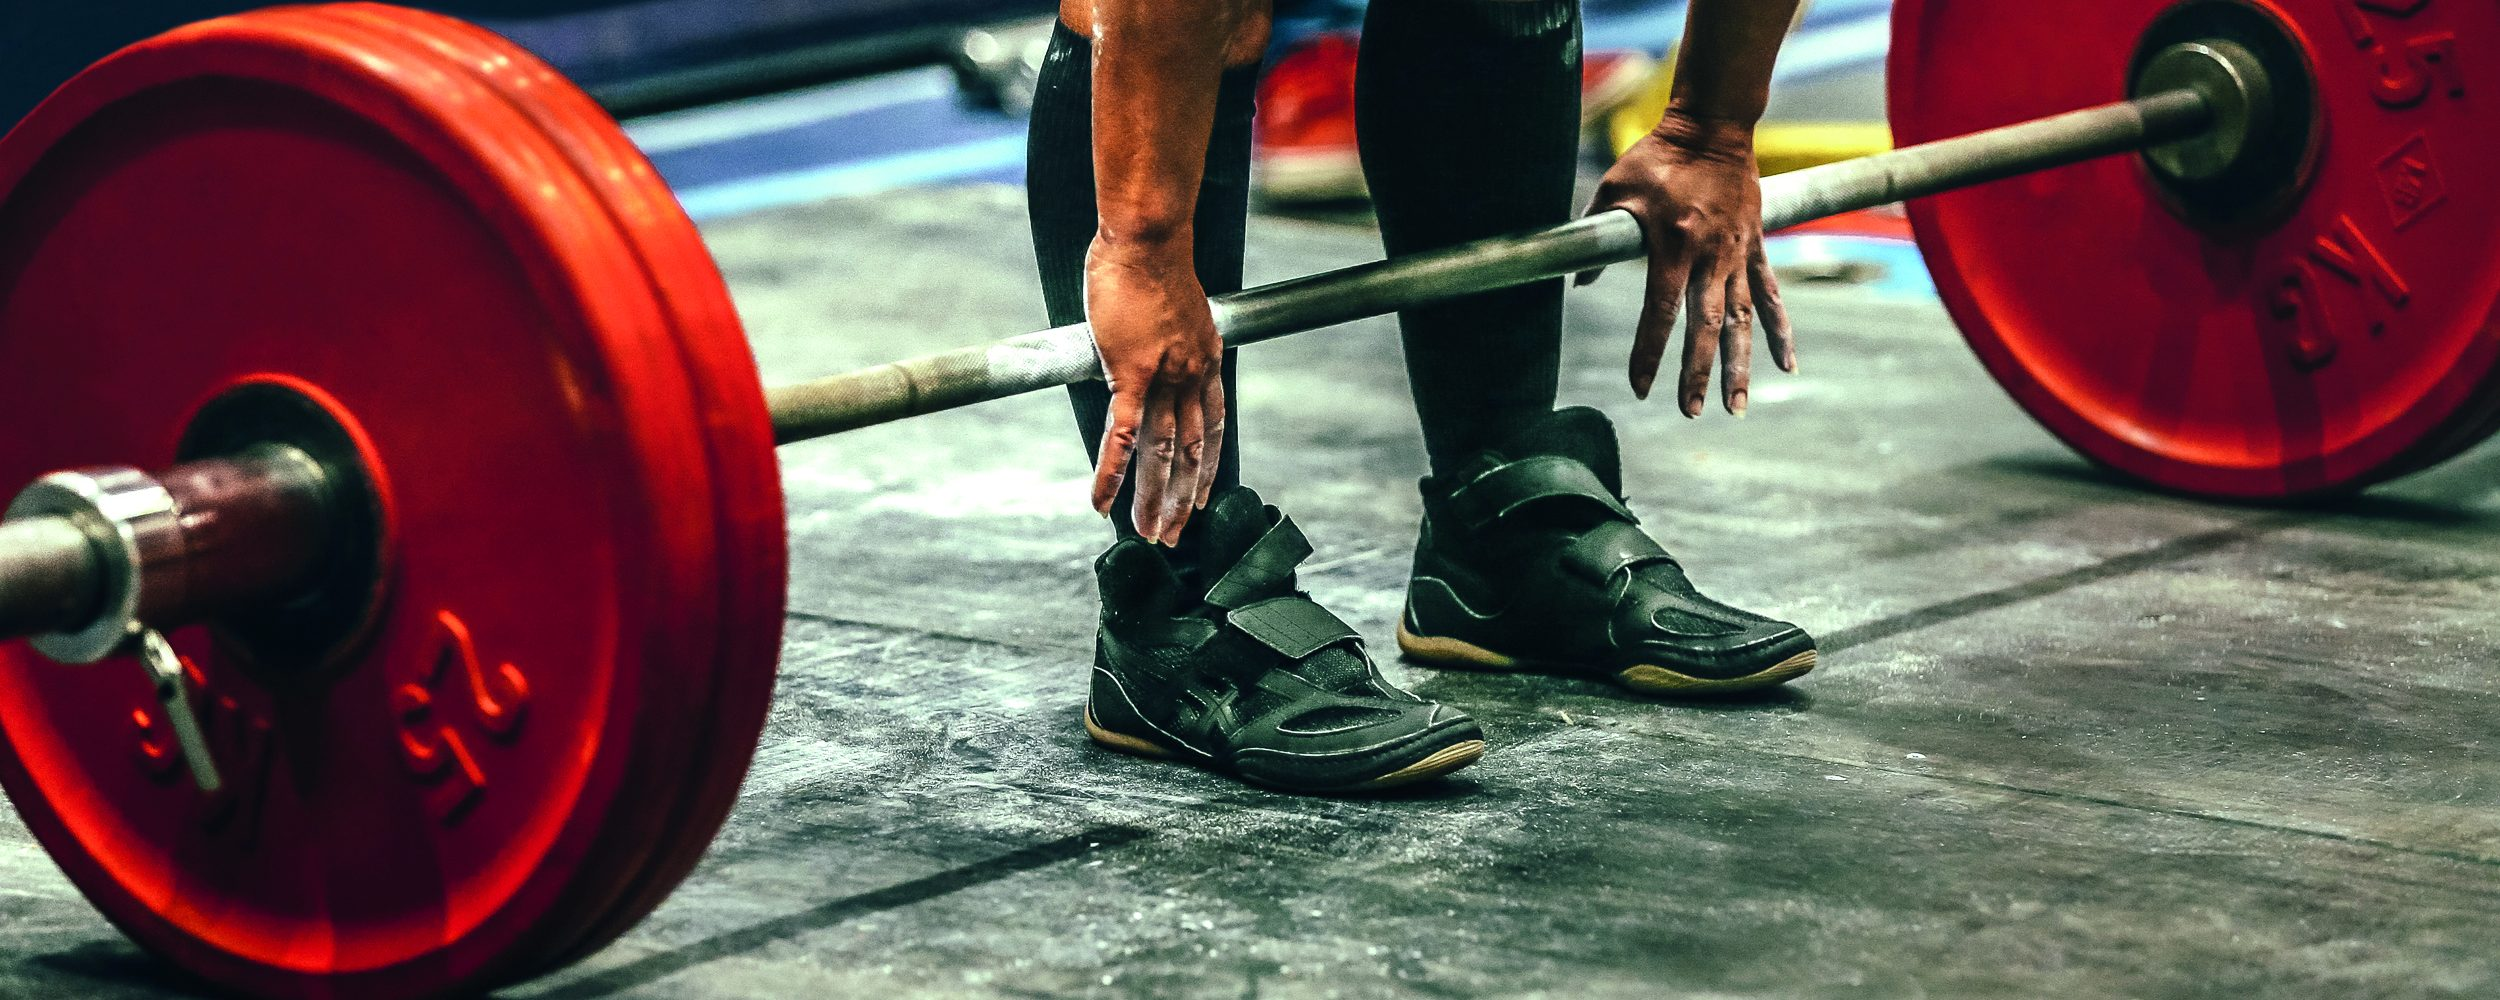 YOUR CLIENTS AREN'T POWERLIFTERS, SO WHY TEST THEM LIKE ONE?